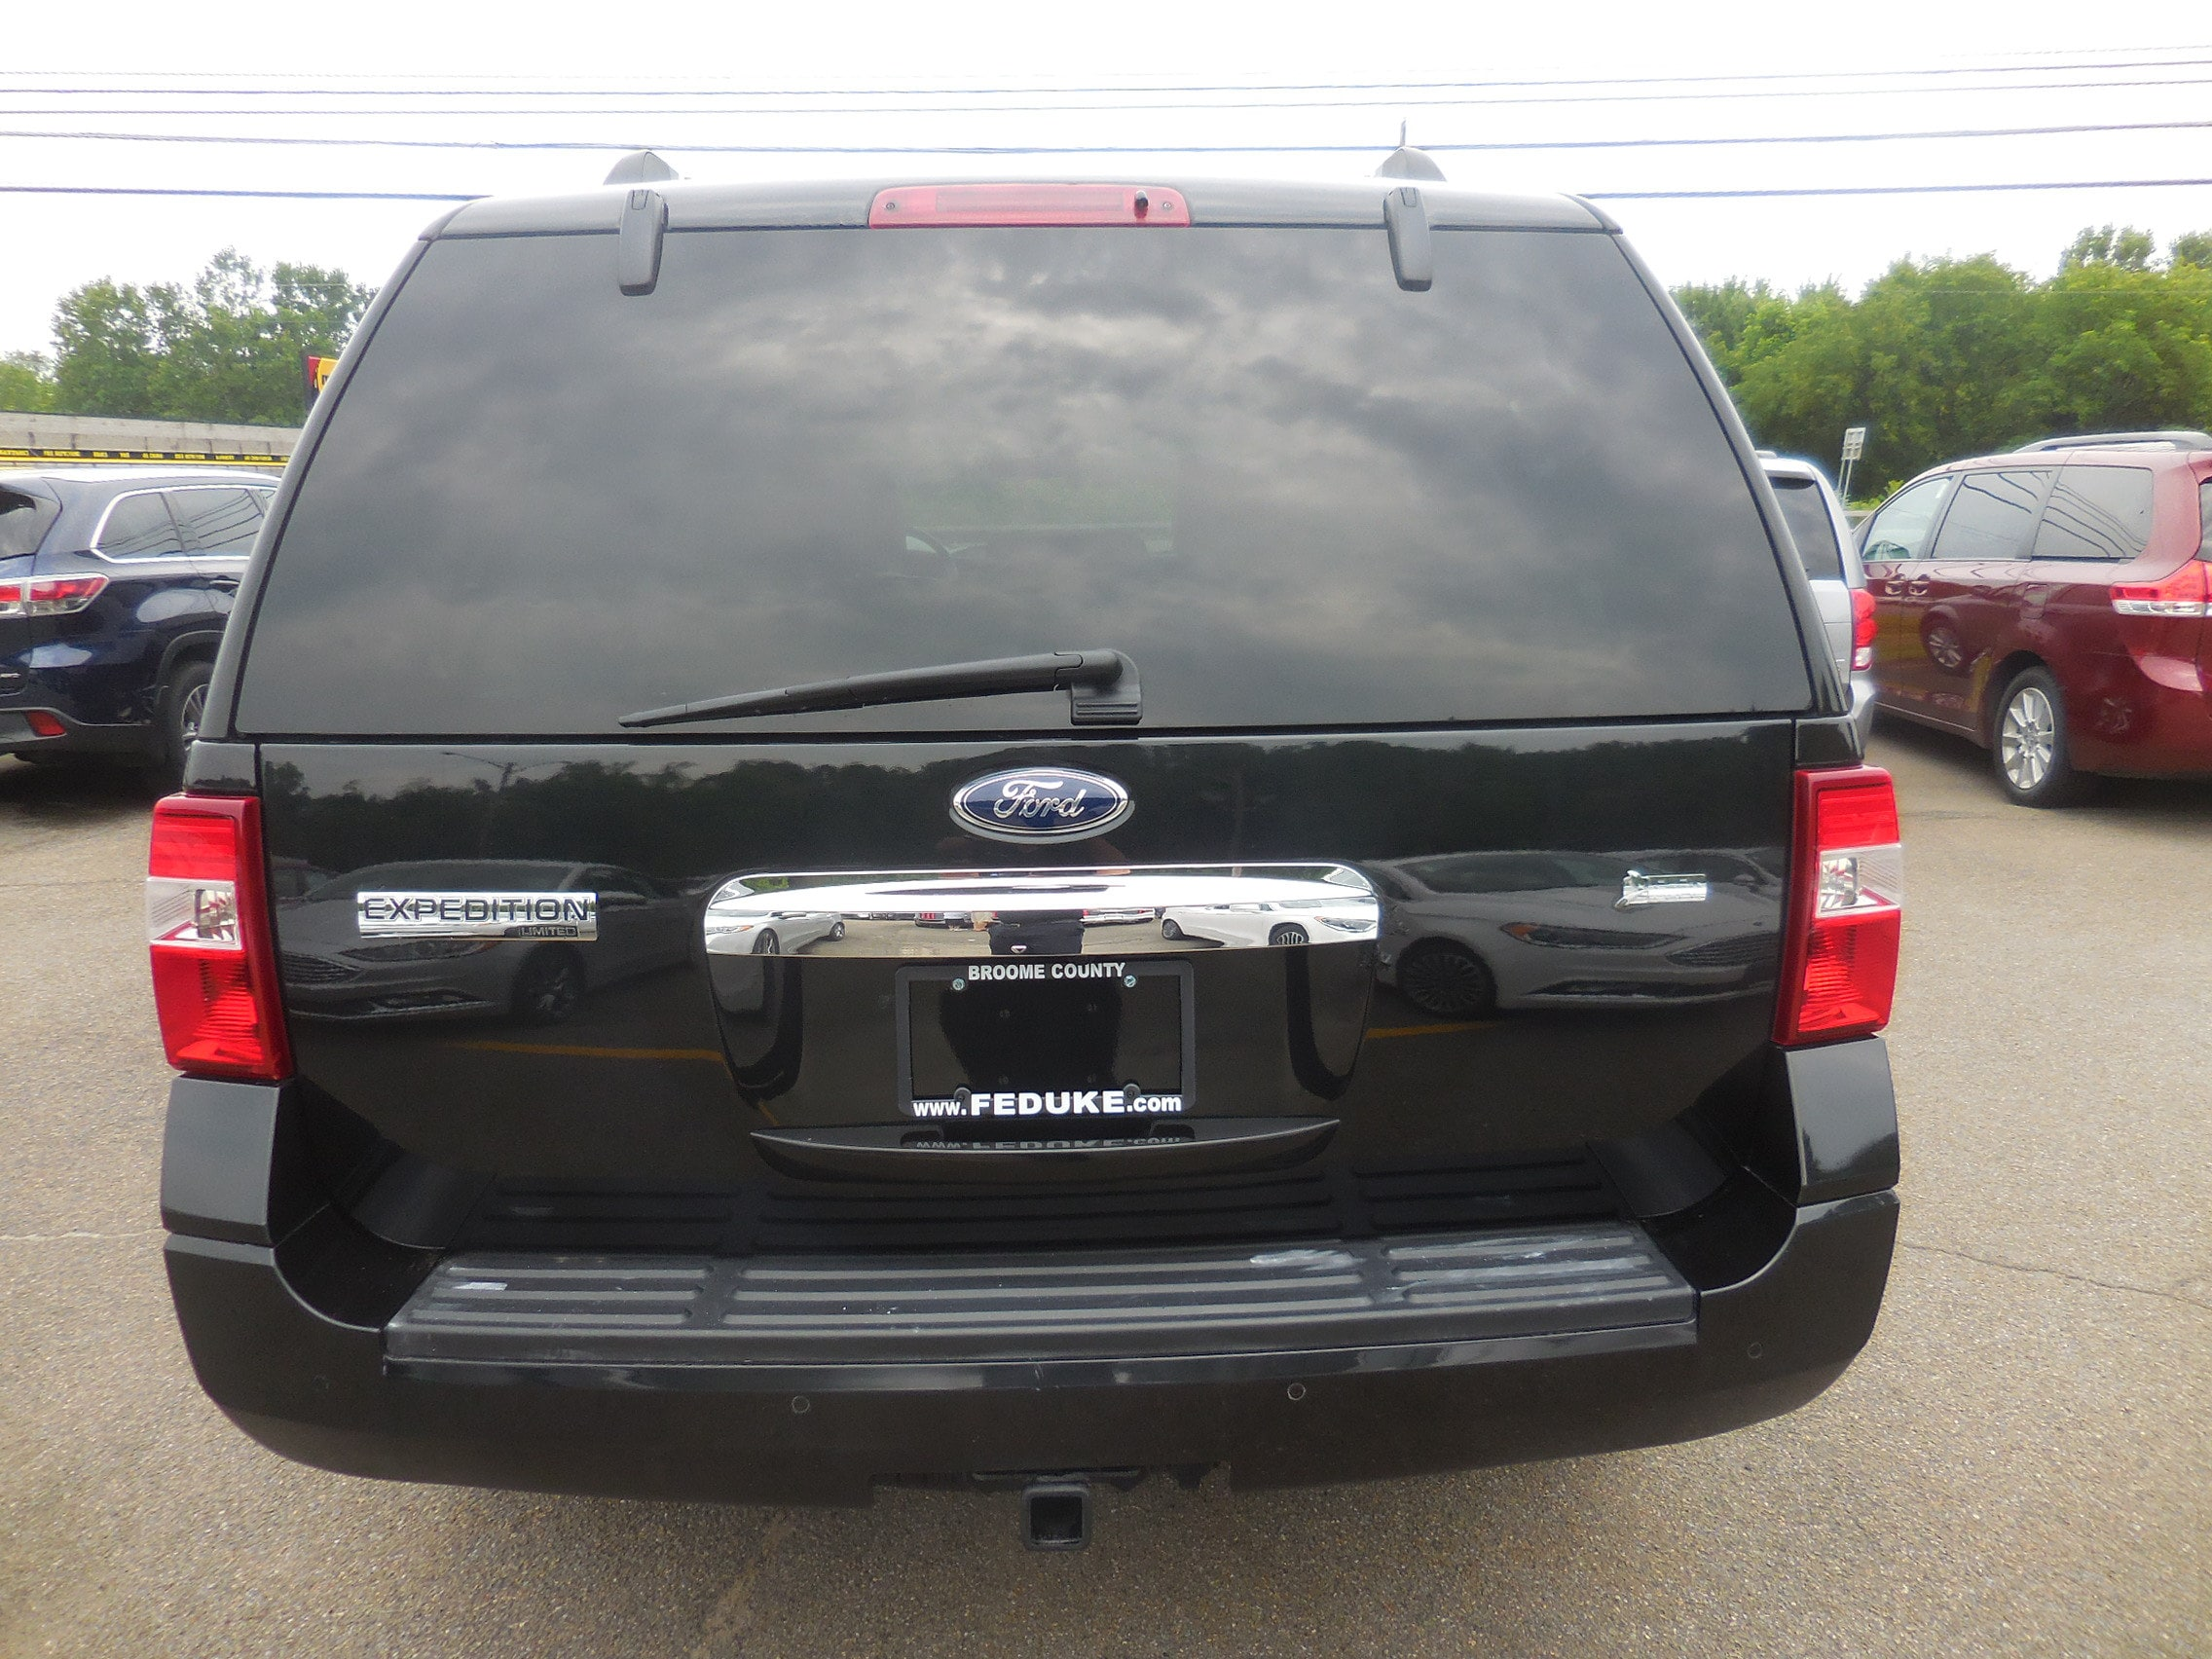 Used 2013 Ford Expedition For Sale at Feduke Lincoln | VIN